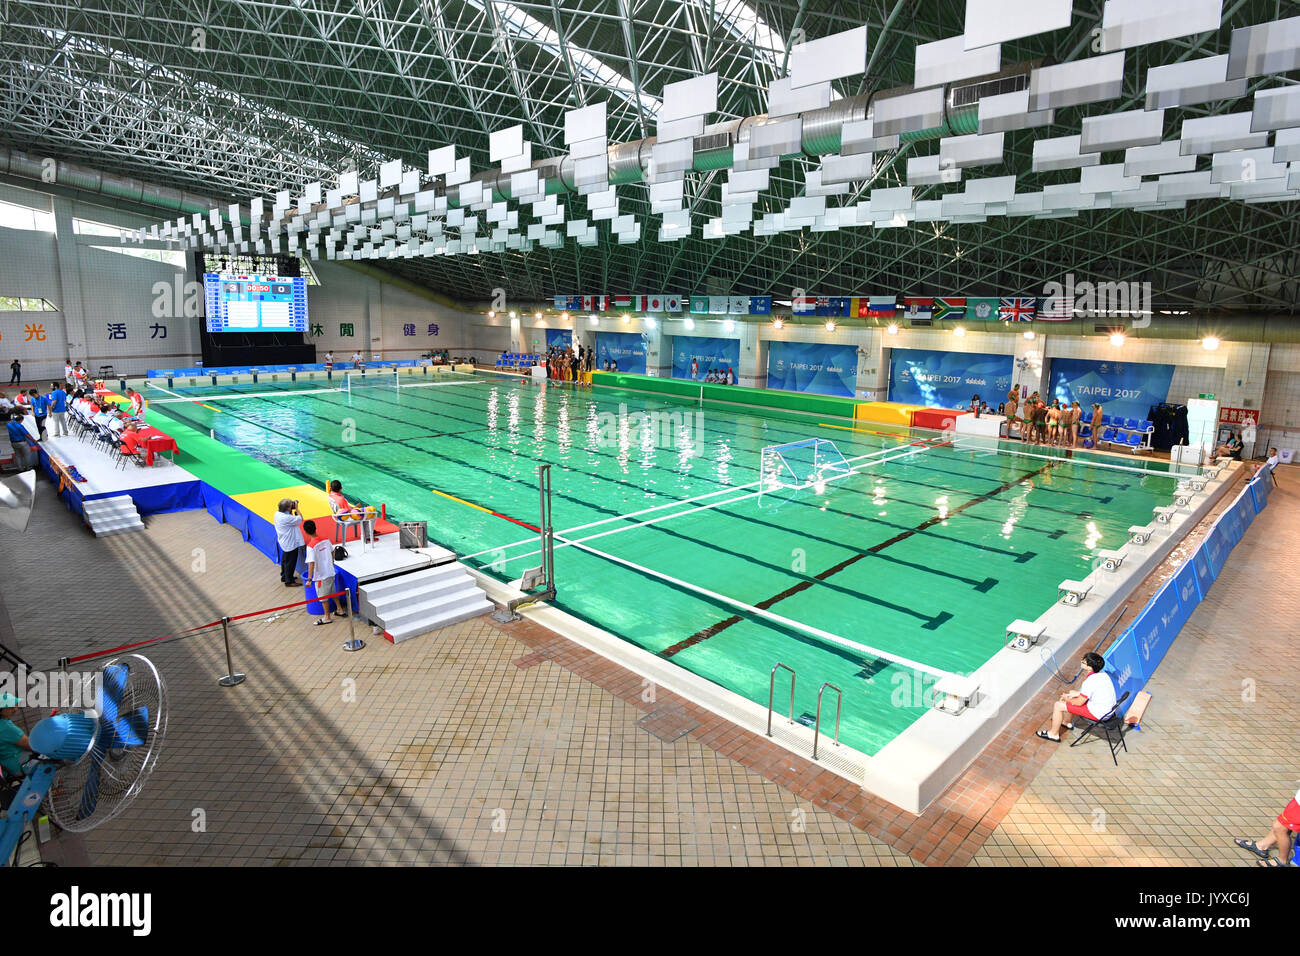 Zhubei, Taiwan. Credit: MATSUO. 18th Aug, 2017. General view Water Polo : The 29th Summer Universiade 2017 Taipei Men's water polo preliminary round Group D match between Japan 9-8 USA at Hsinchu County Natatorium in Zhubei, Taiwan. Credit: MATSUO .K/AFLO SPORT/Alamy Live News - Stock Image